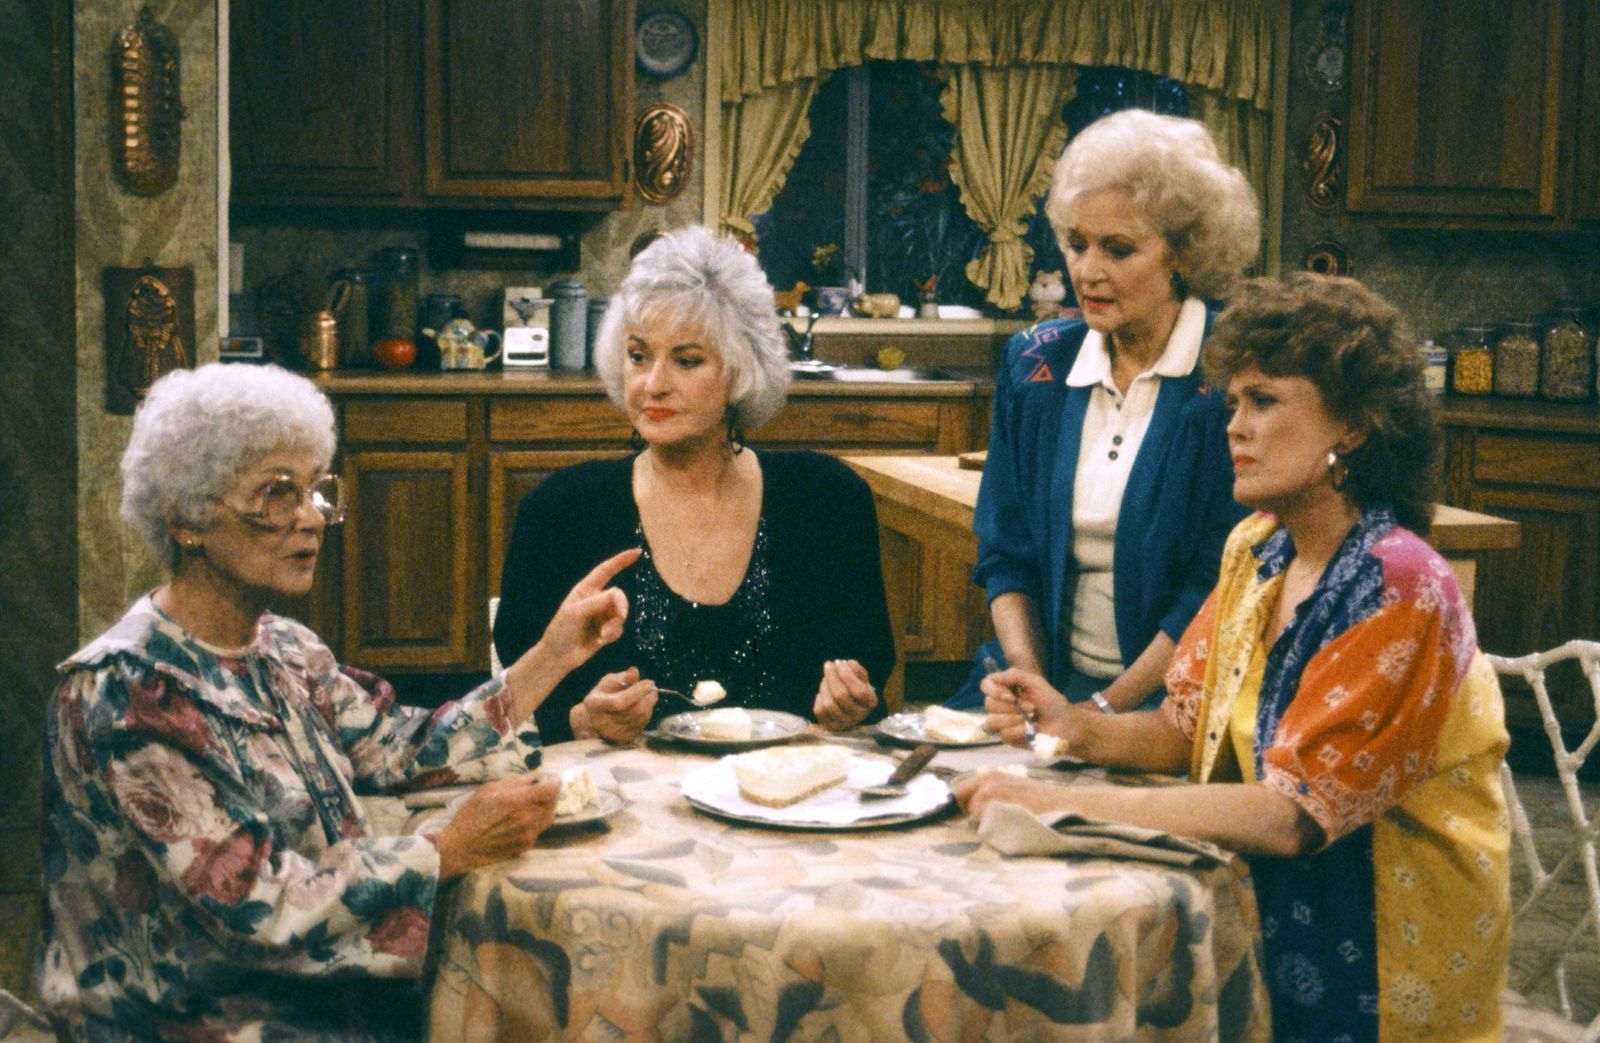 The Story Behind Betty White and Bea Arthurs Infamous Feud